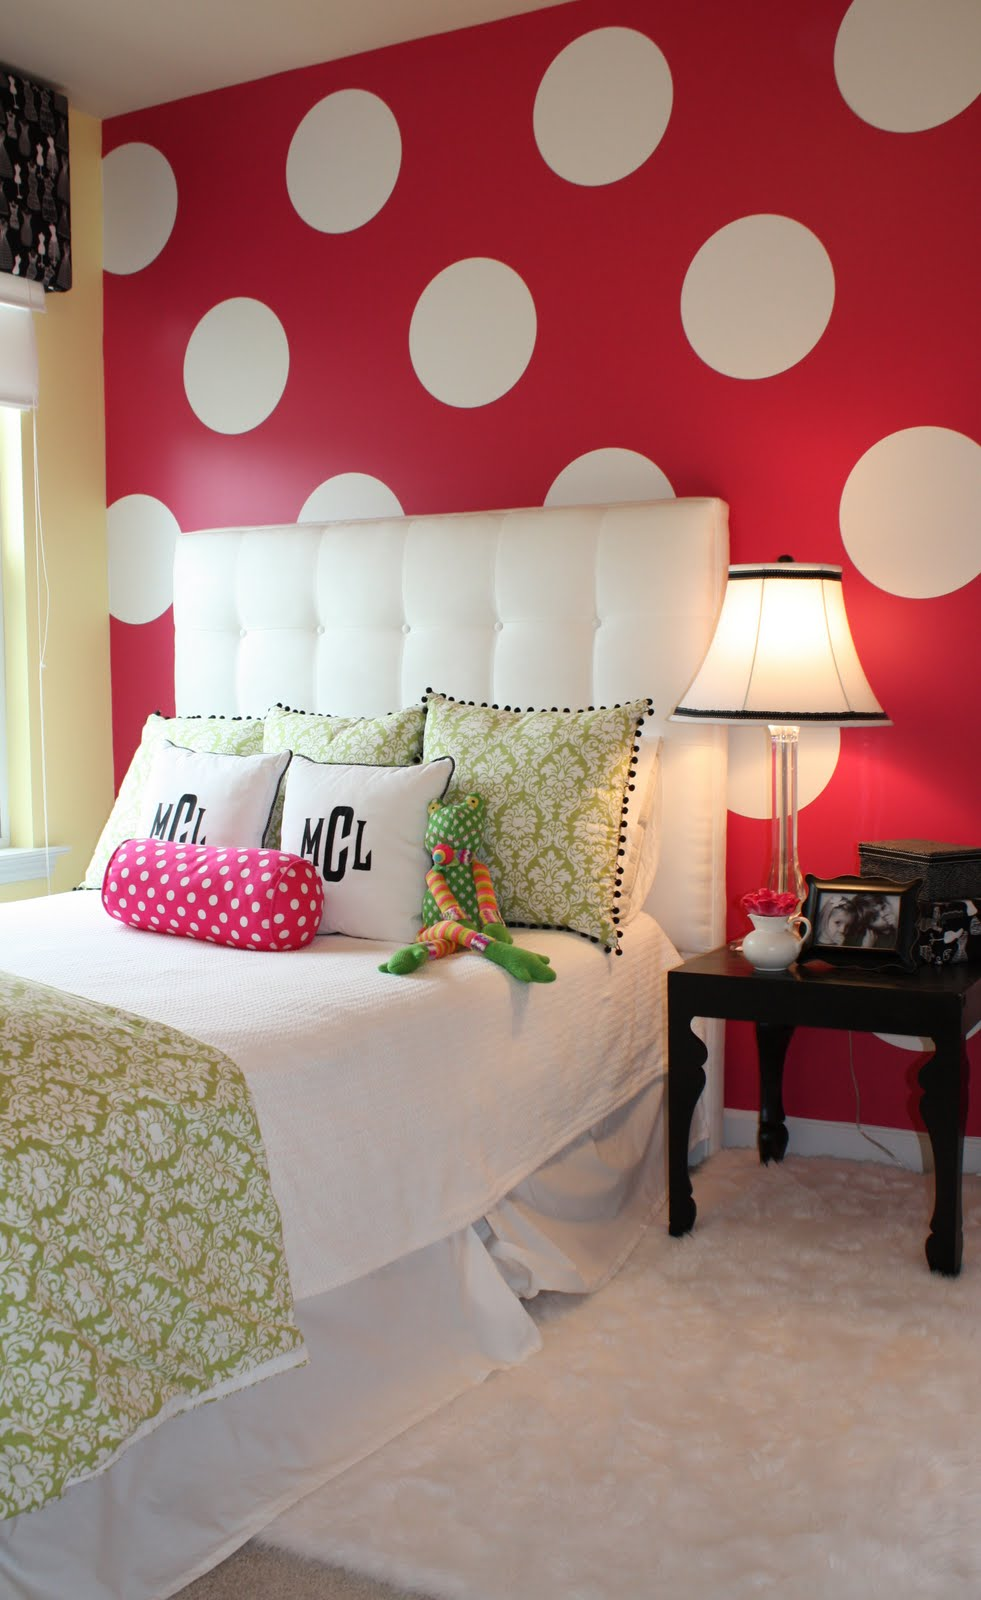 Ideas for shelby 39 s minnie mouse bedroom on pinterest for Polka dot bedroom designs